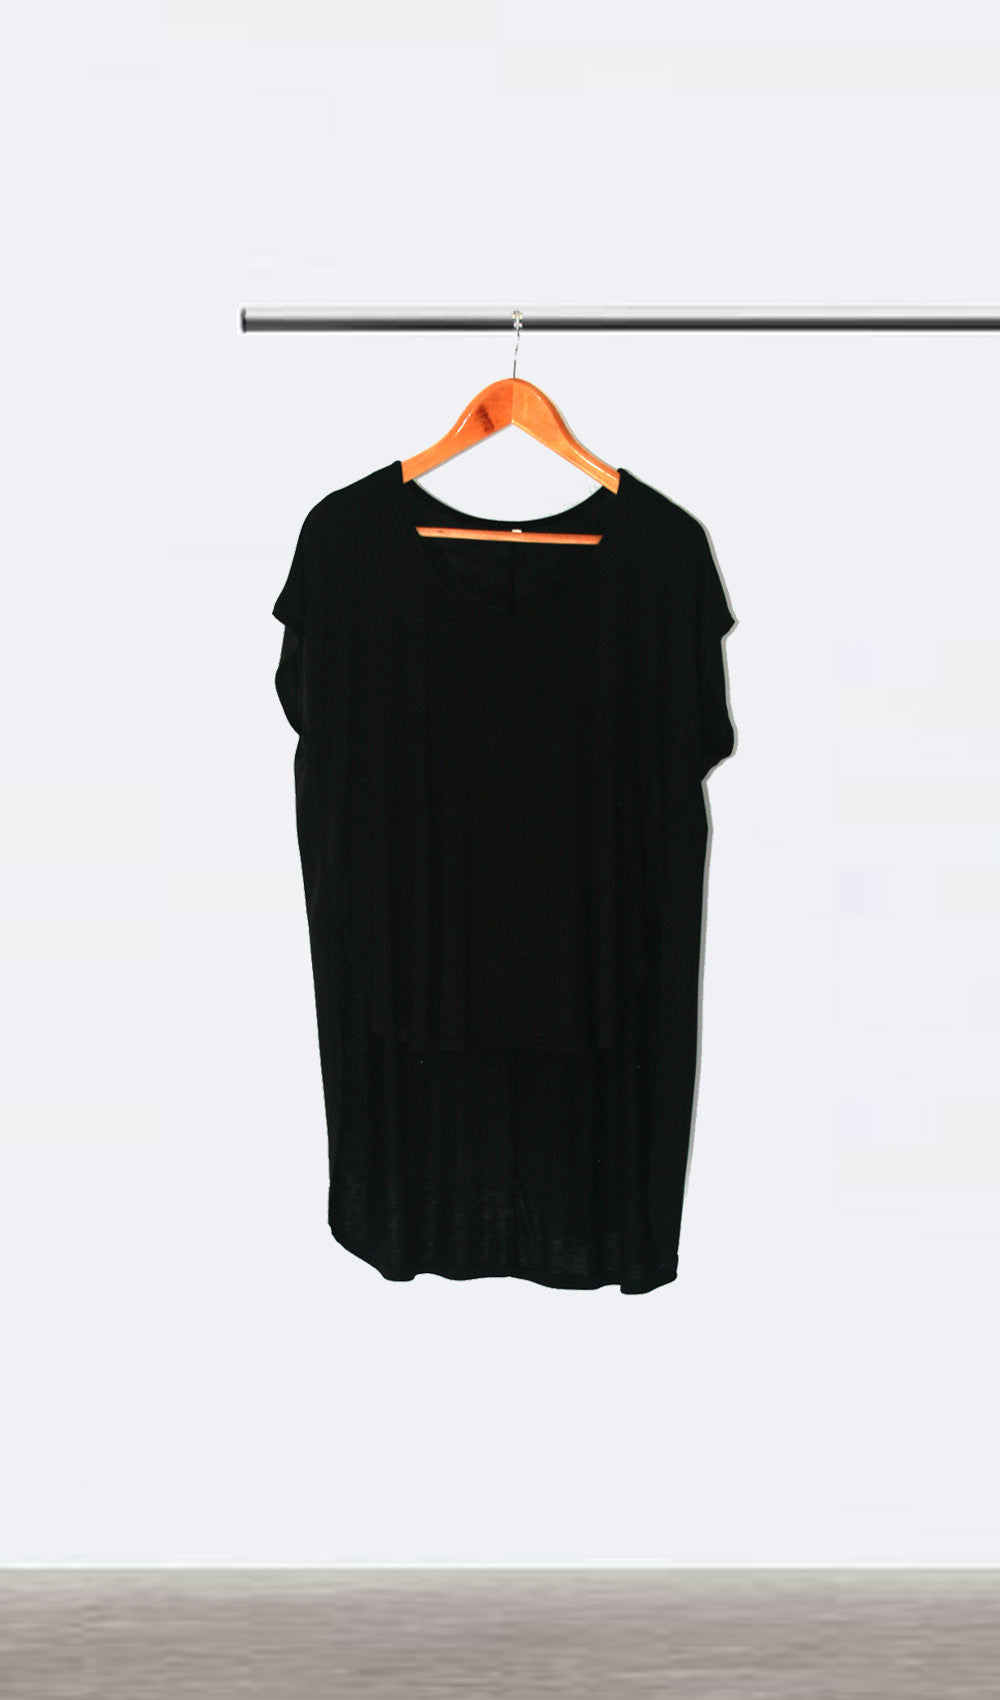 Ellipsis - The Black Oversized Tee